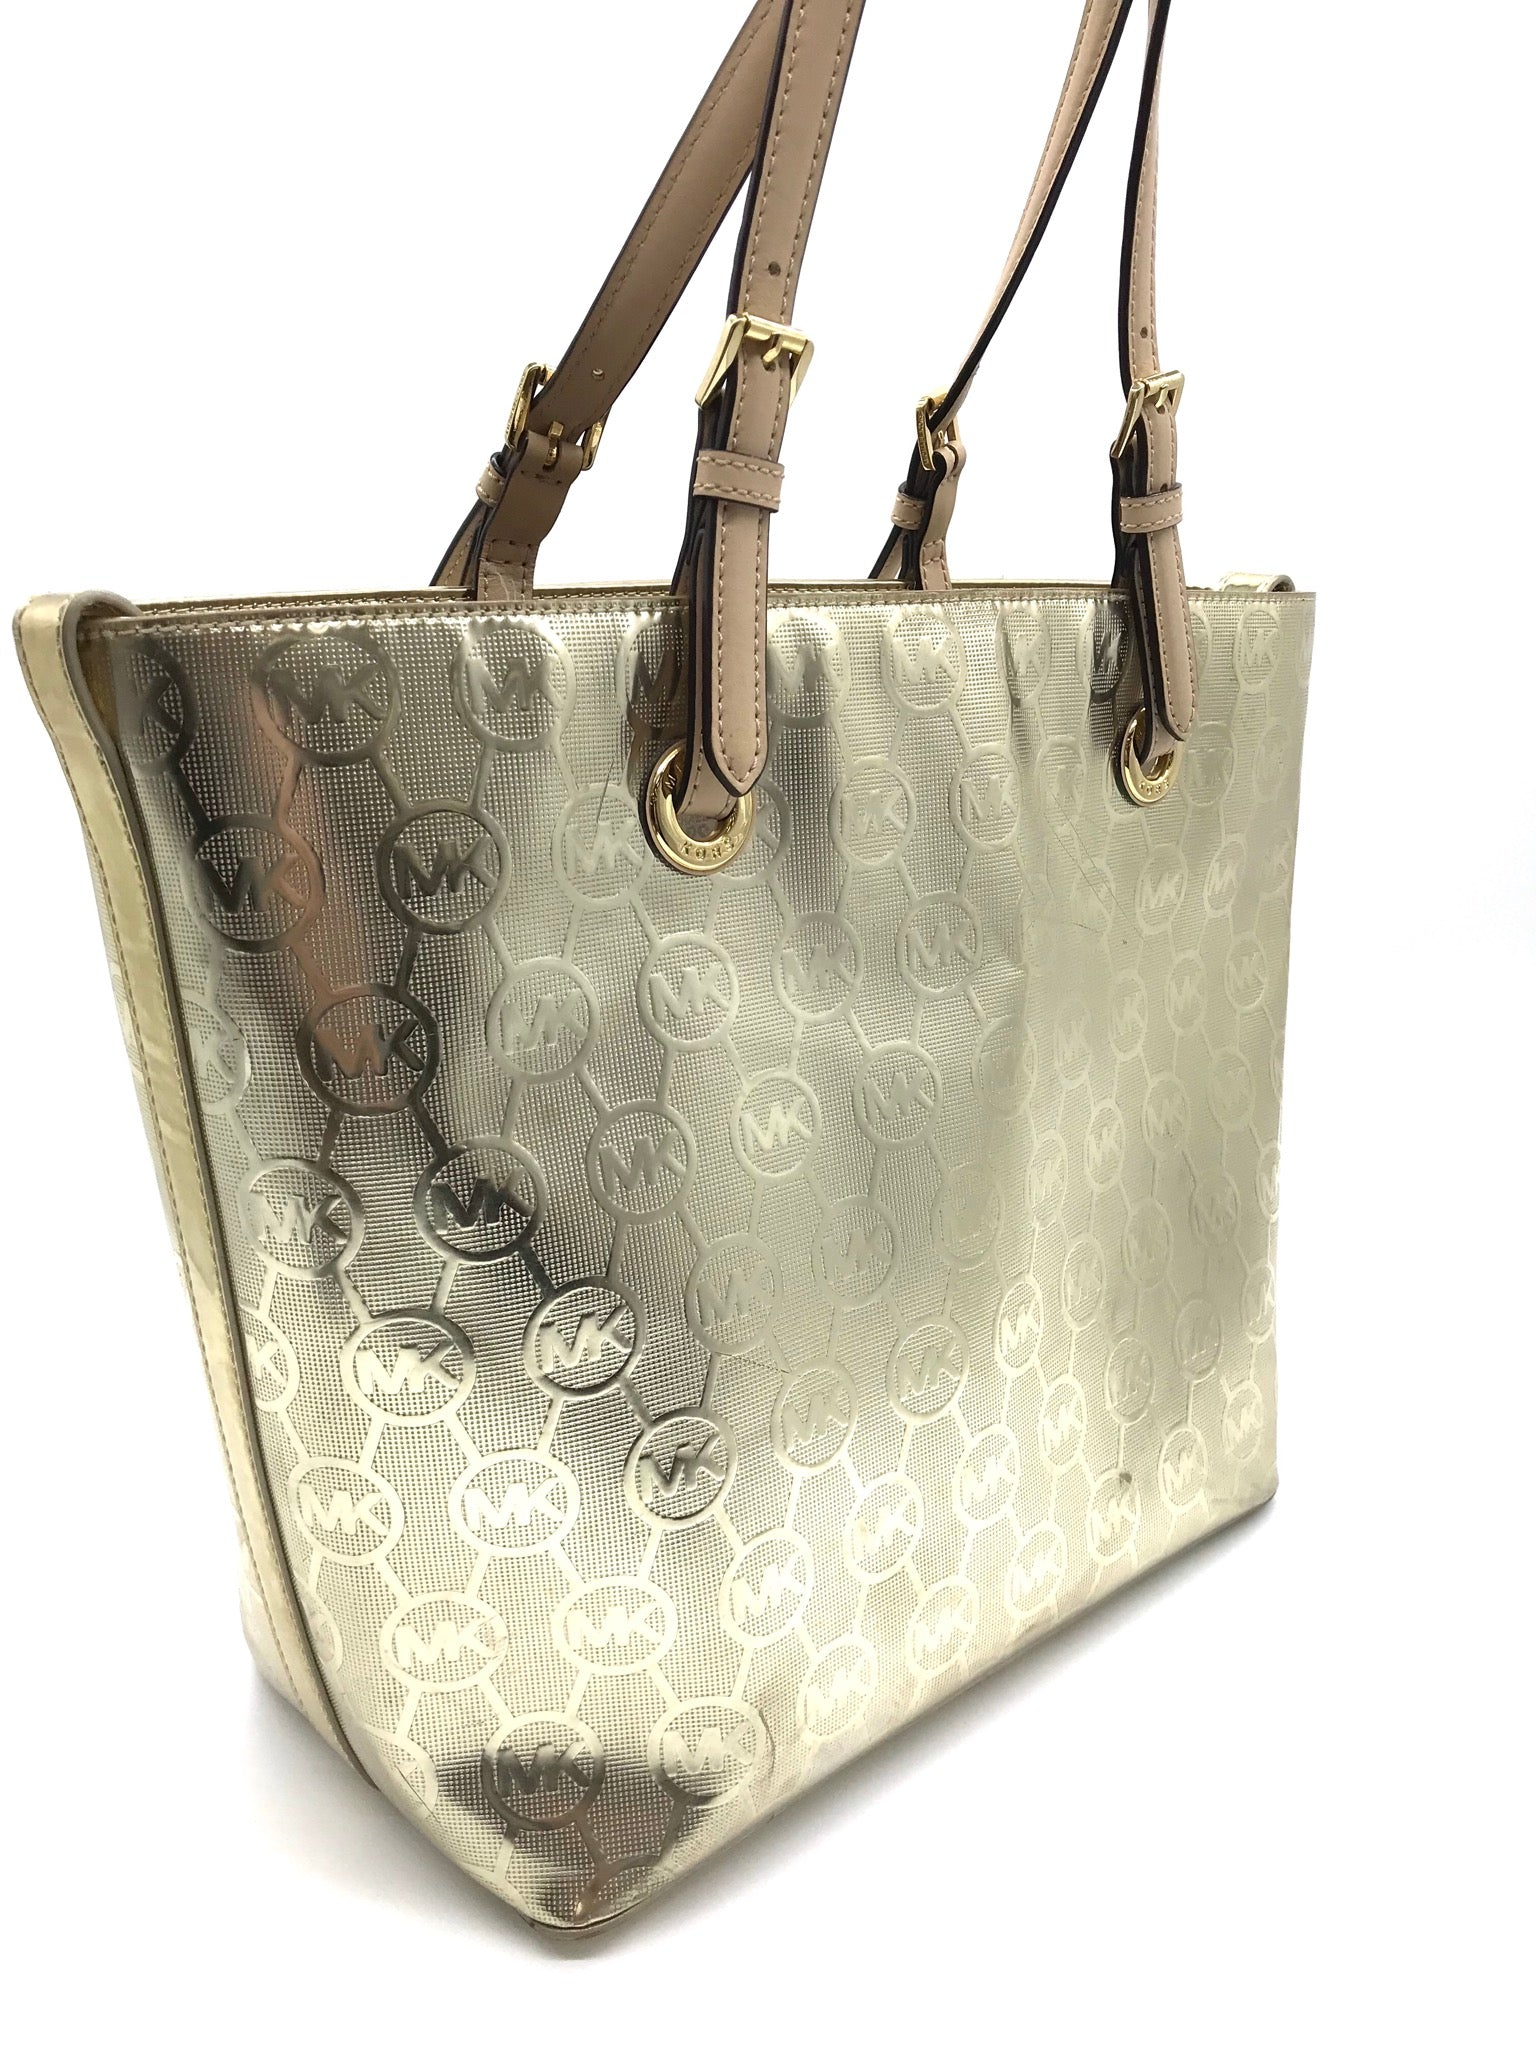 Photo #1 - BRAND: MICHAEL KORS <BR>STYLE: HANDBAG DESIGNER <BR>COLOR: GOLD <BR>SIZE: MEDIUM <BR>SKU: 262-26275-64439<BR>GENTLE WEAR - AS IS<BR>DESIGNER BRAND - FINAL SALE